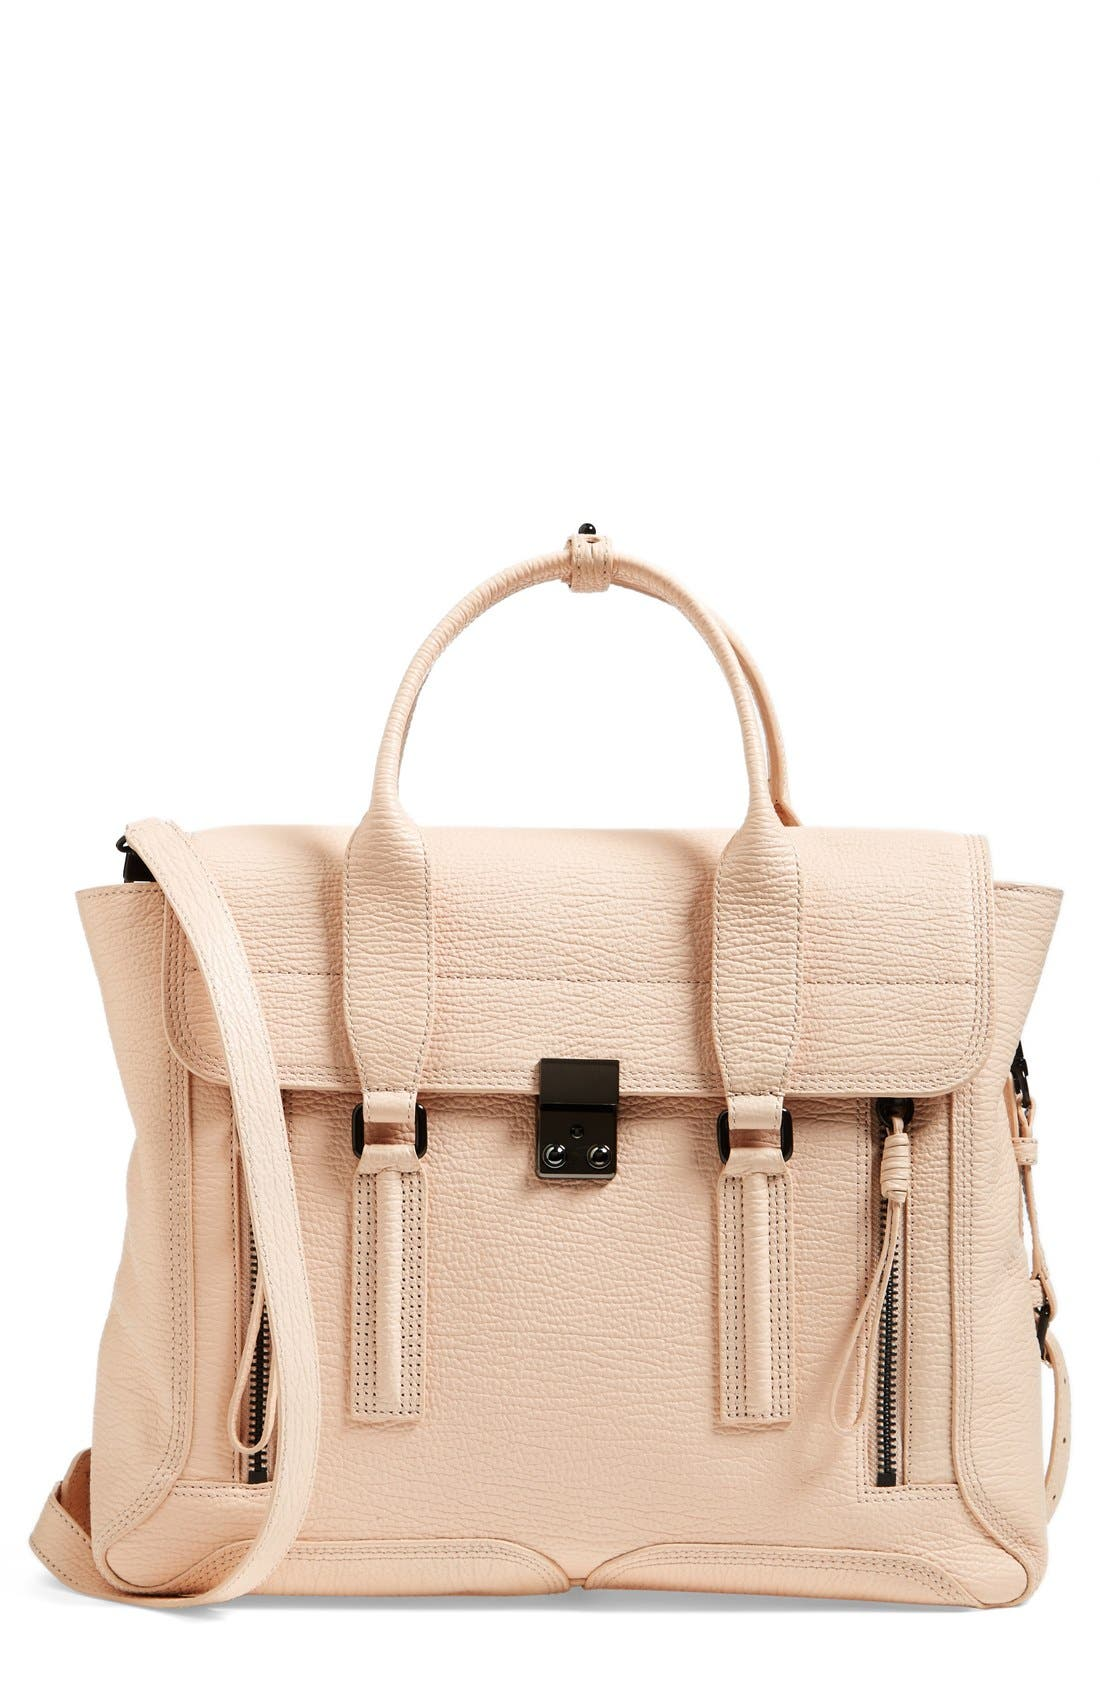 Alternate Image 1 Selected - 3.1 Phillip Lim 'Pashli' Leather Crossbody Satchel